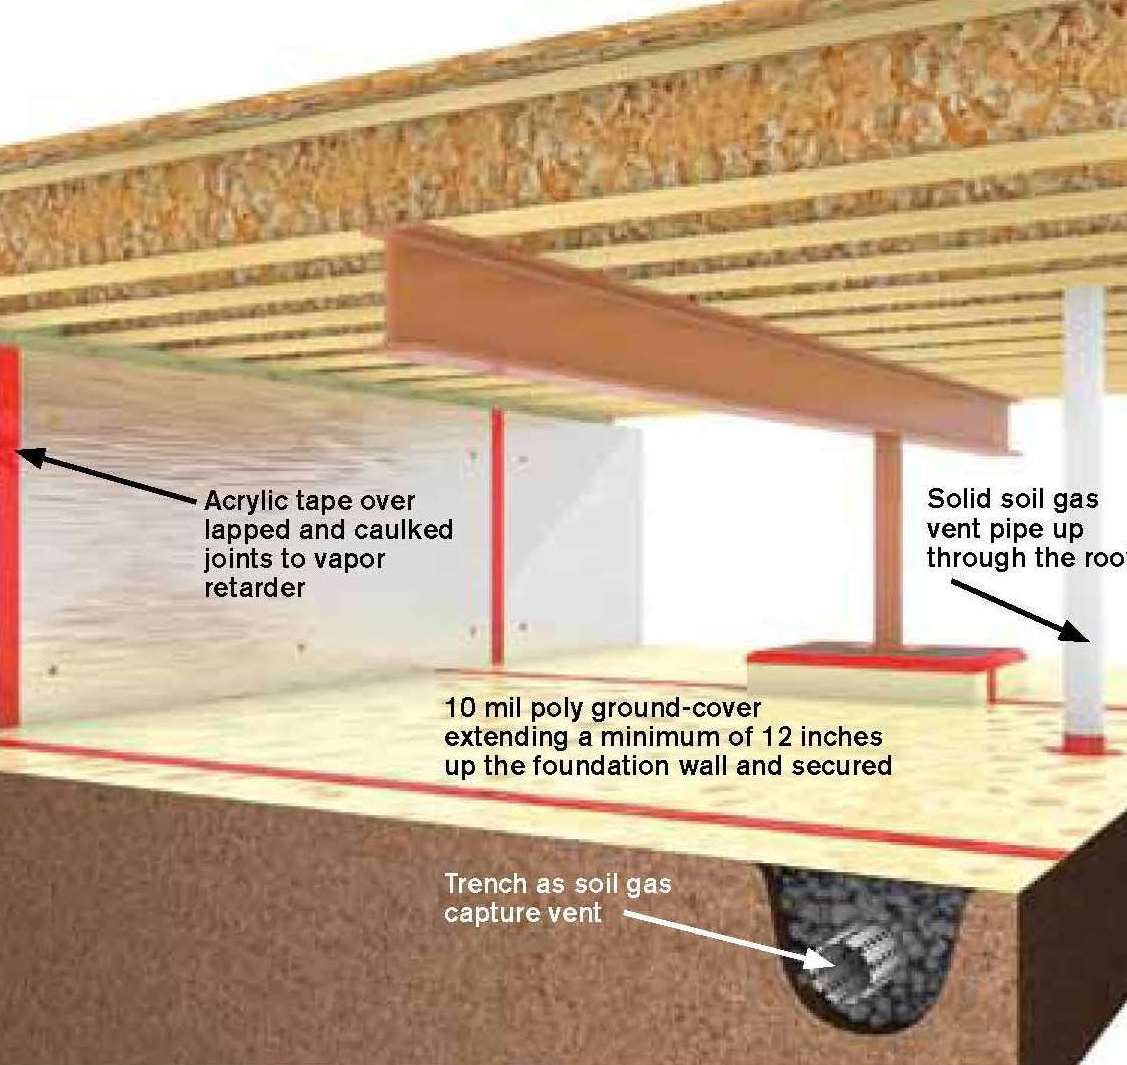 Conditioning crawlspaces - Pro Construction Guide